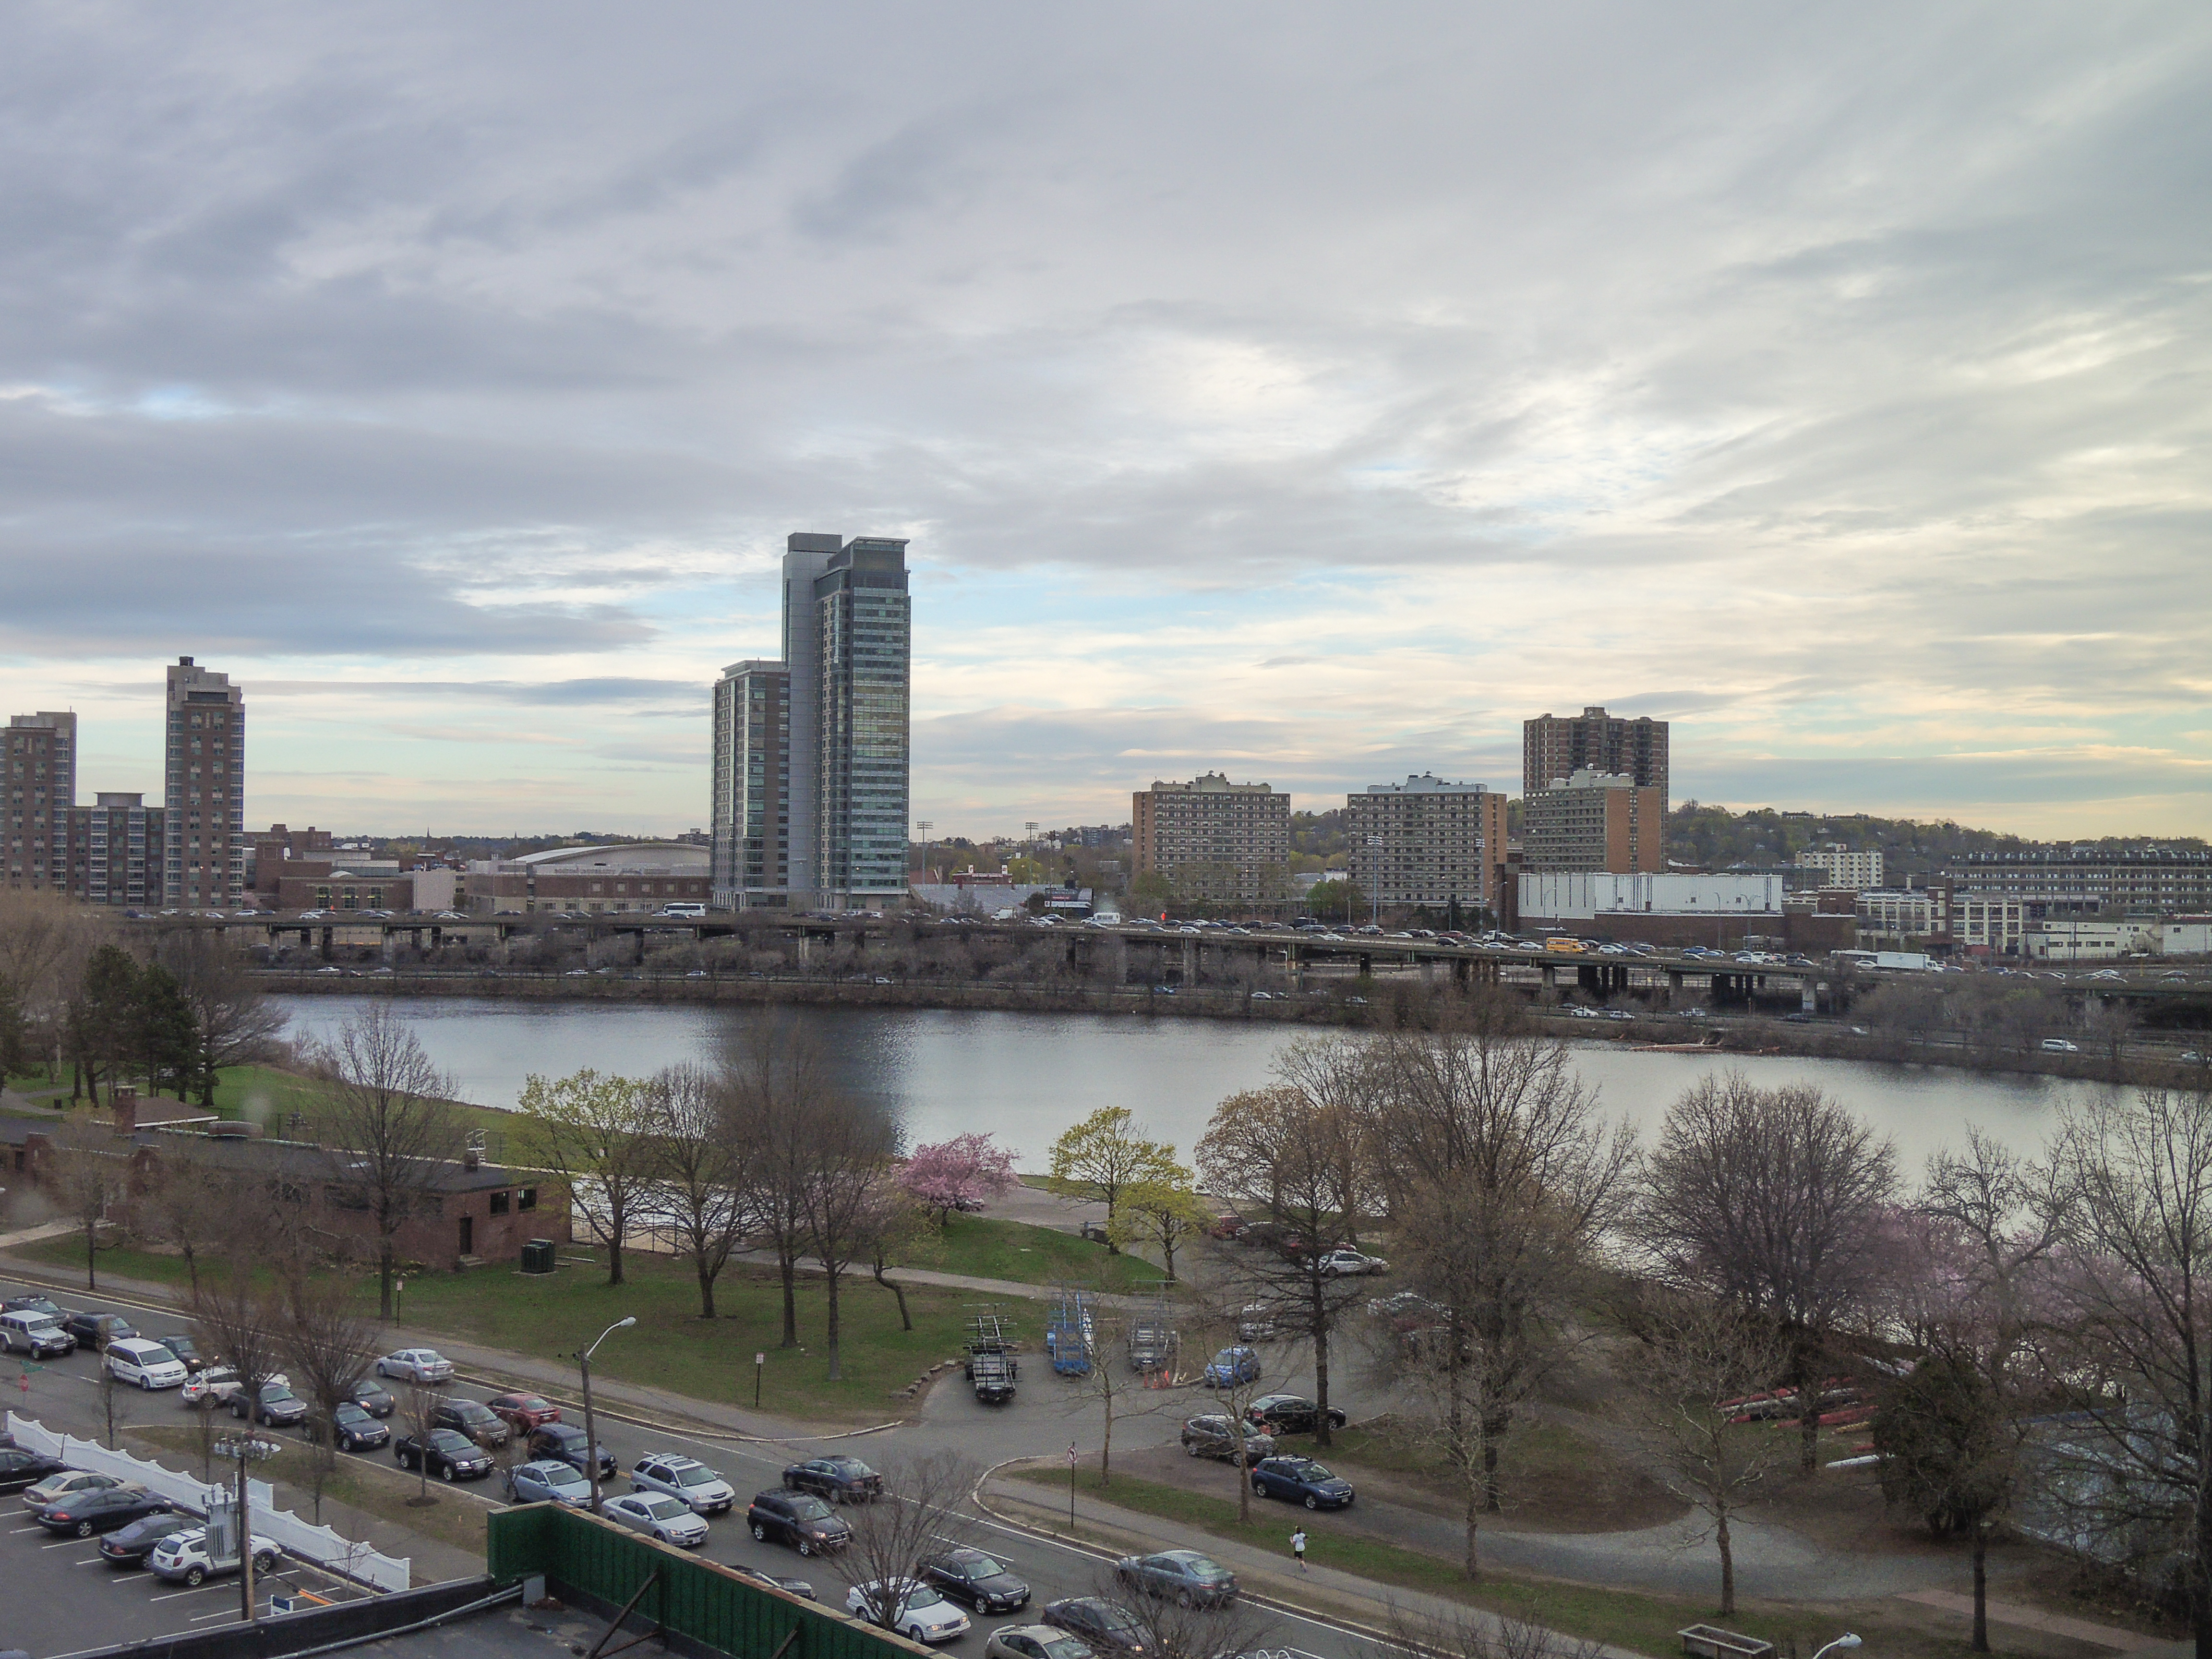 The view from our hotel room on the St. Charles River